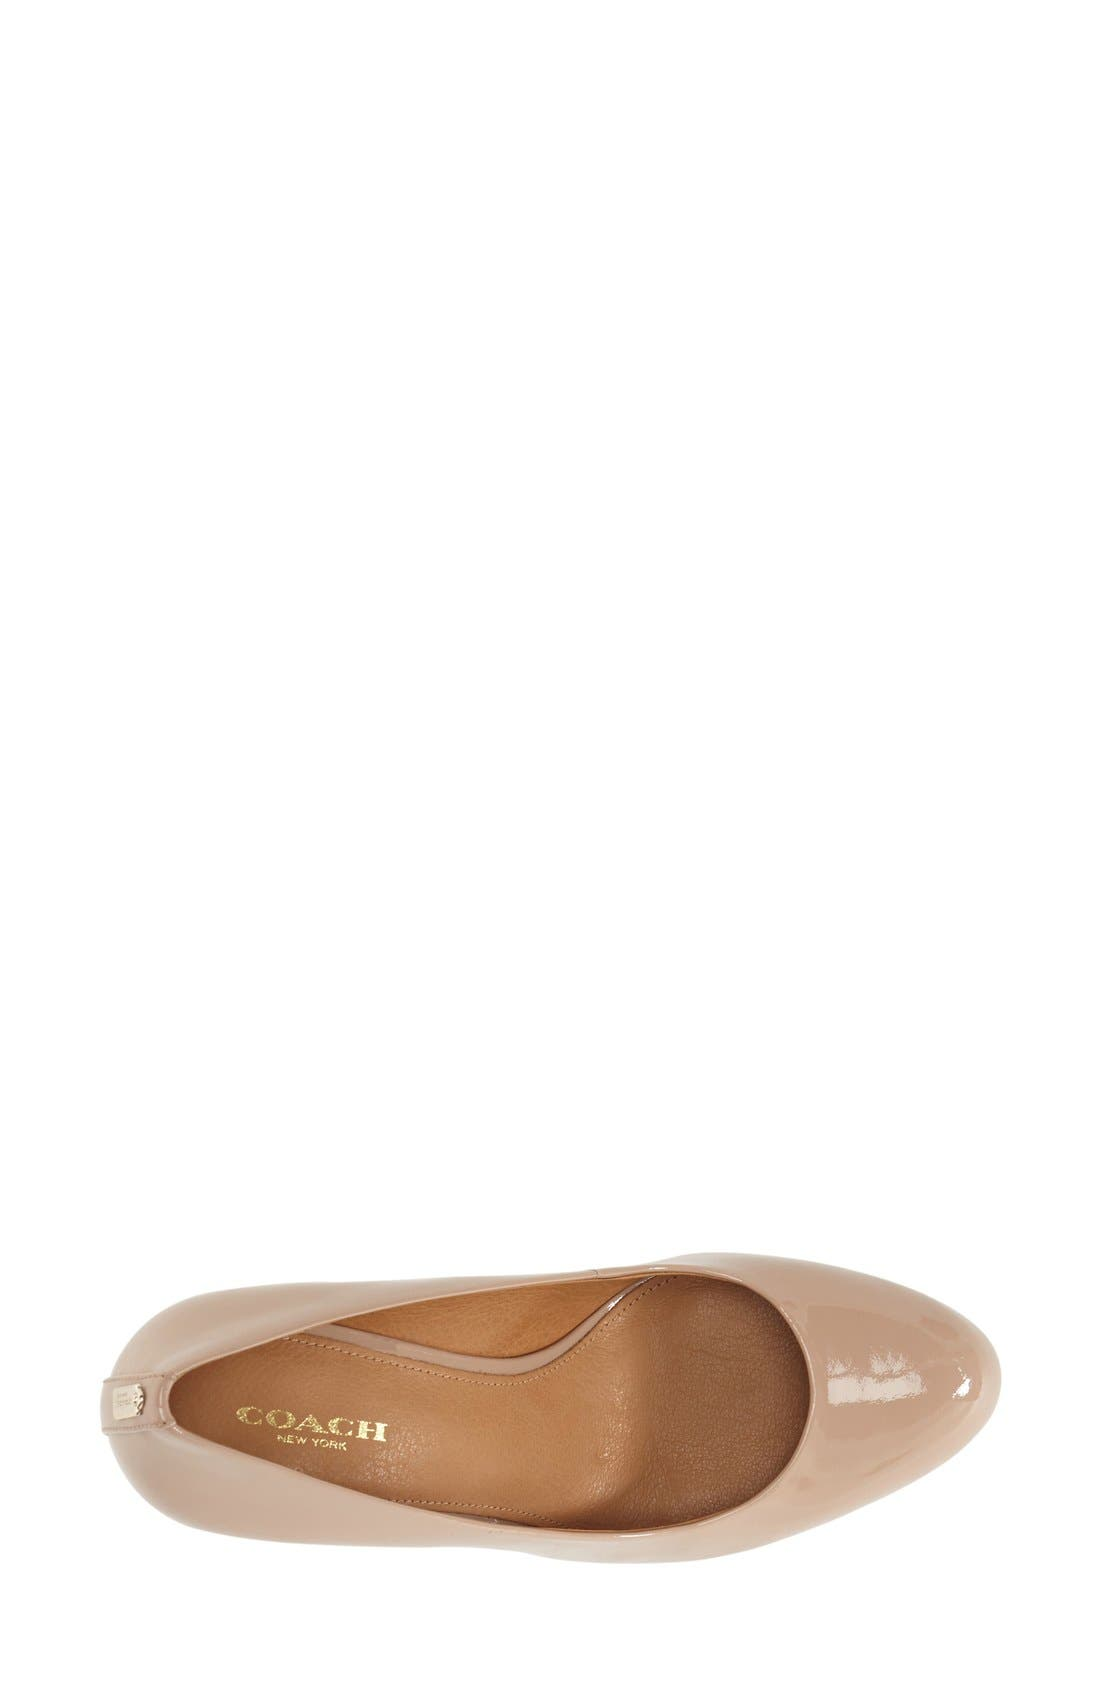 Alternate Image 3  - COACH 'Rileigh' Wedge Pump (Women)